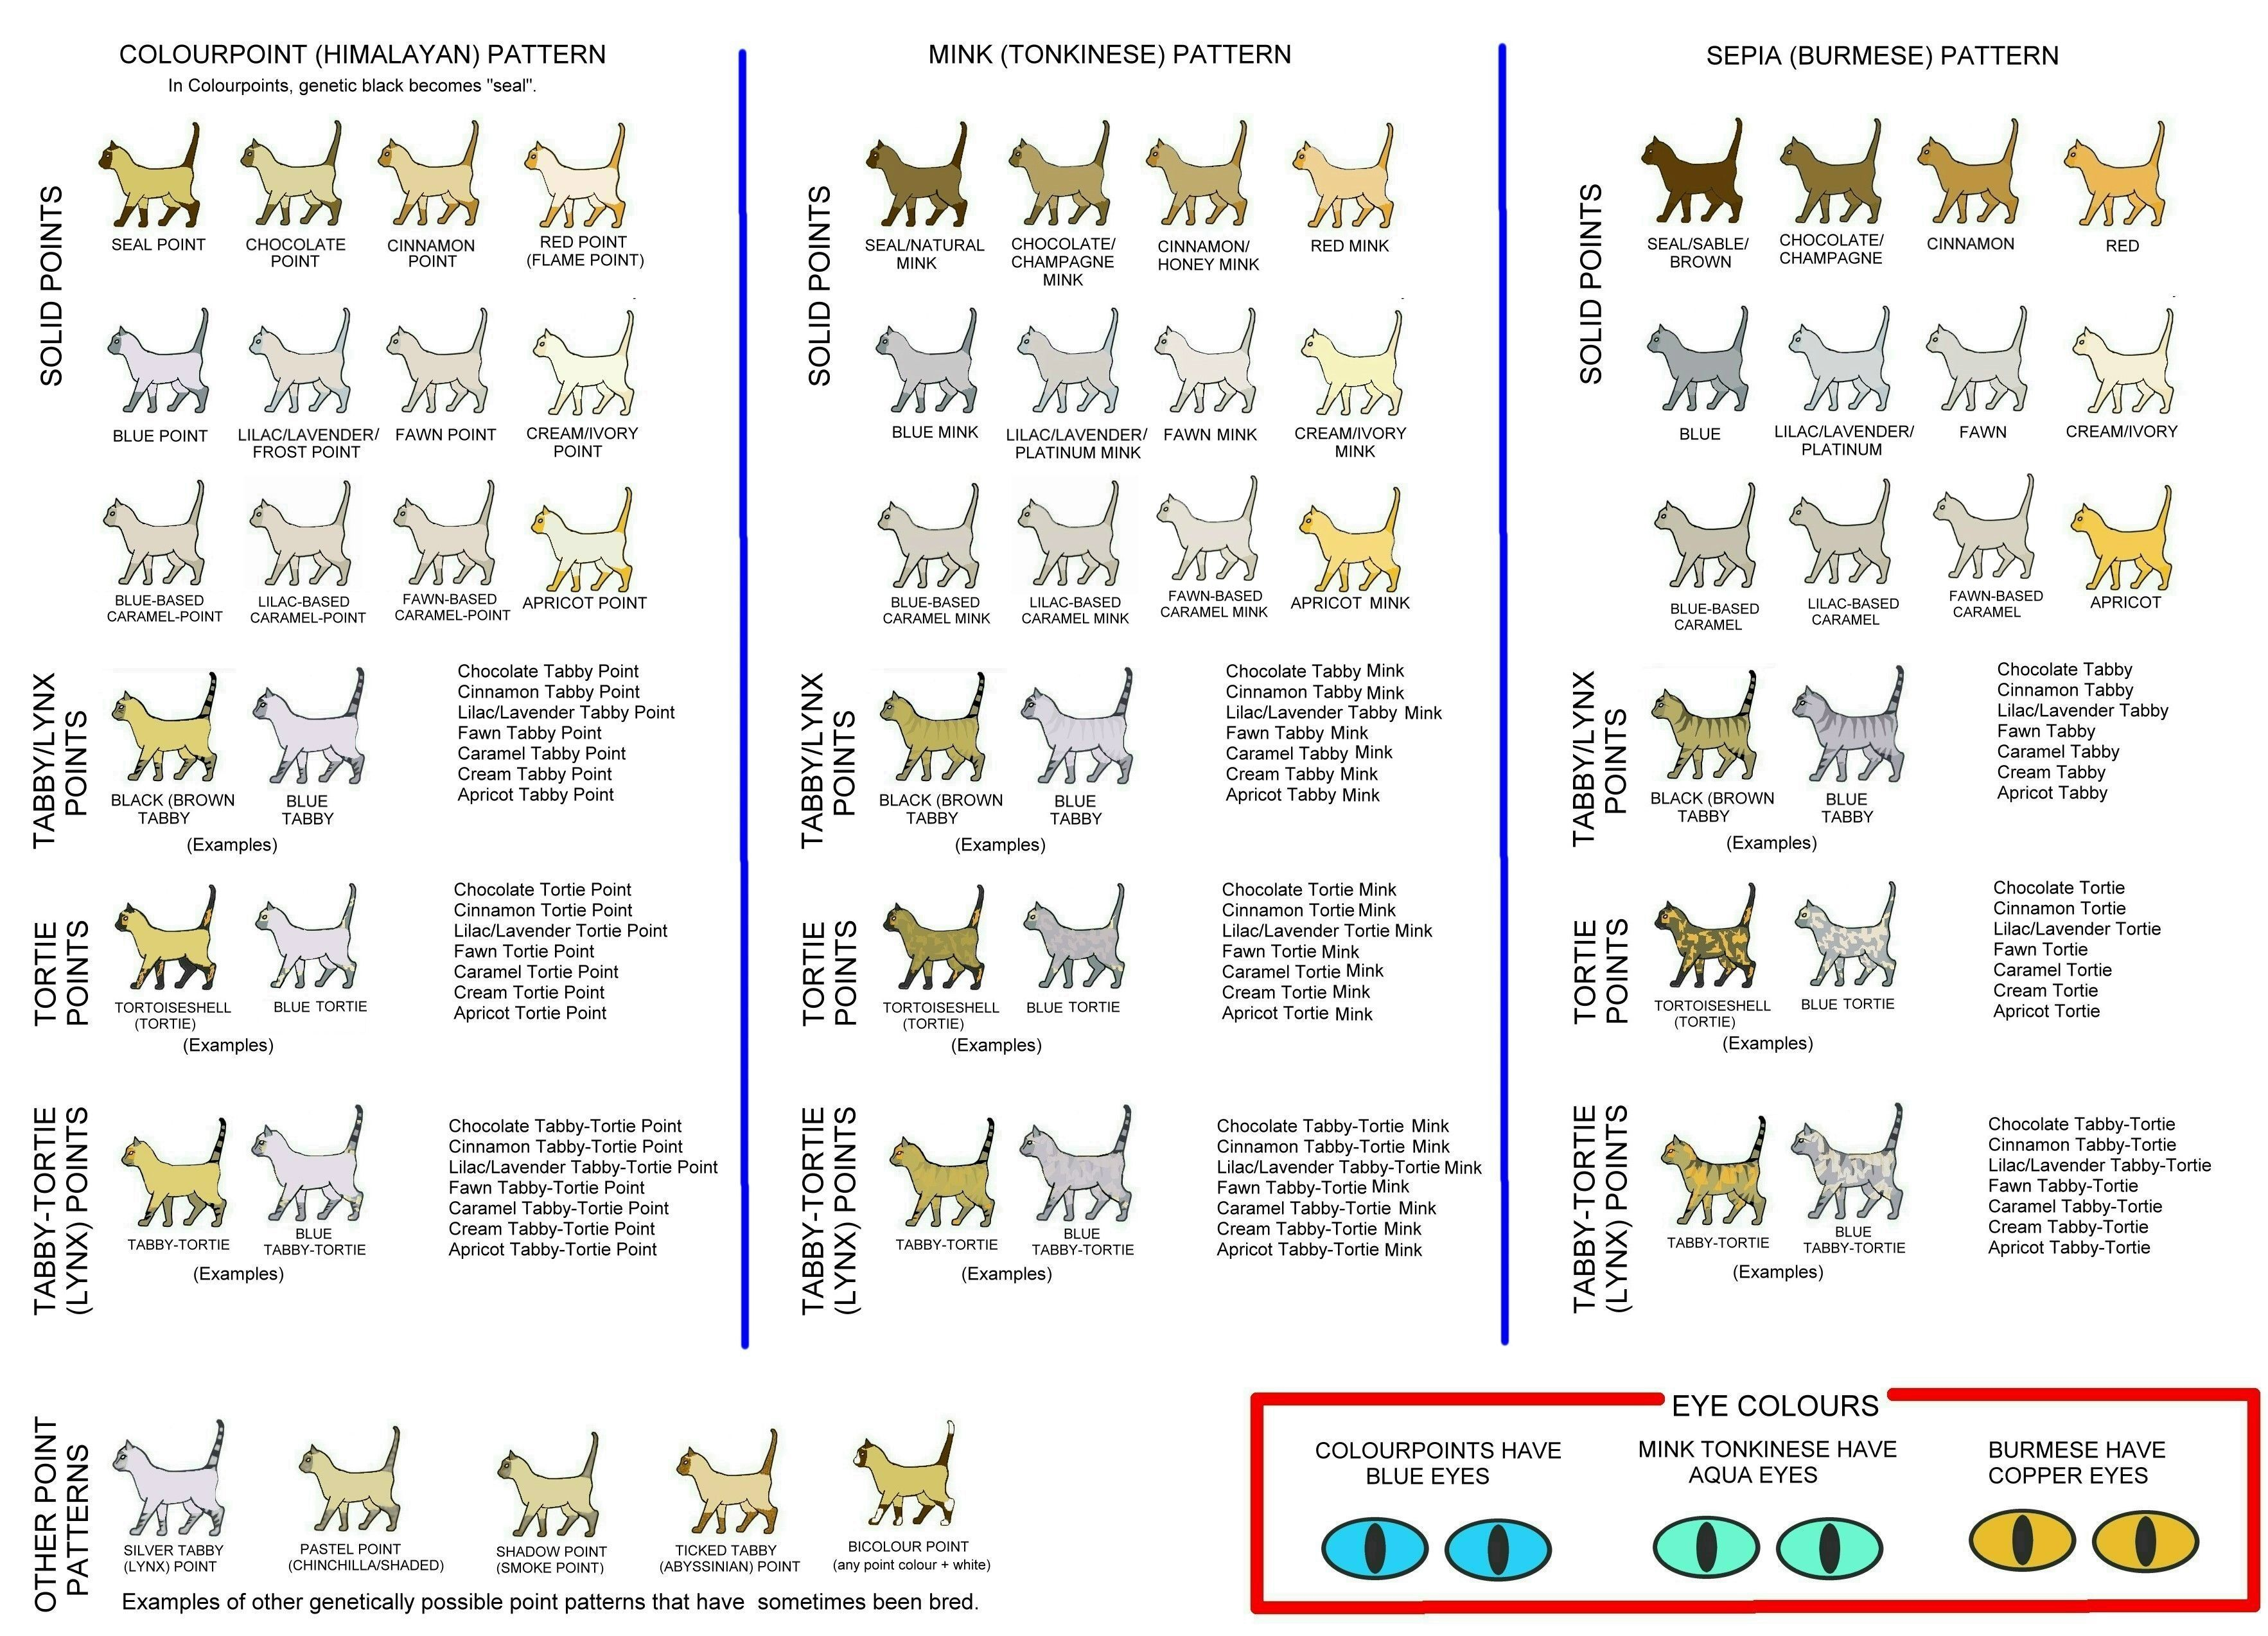 tonkinese color coat pattern eye color image